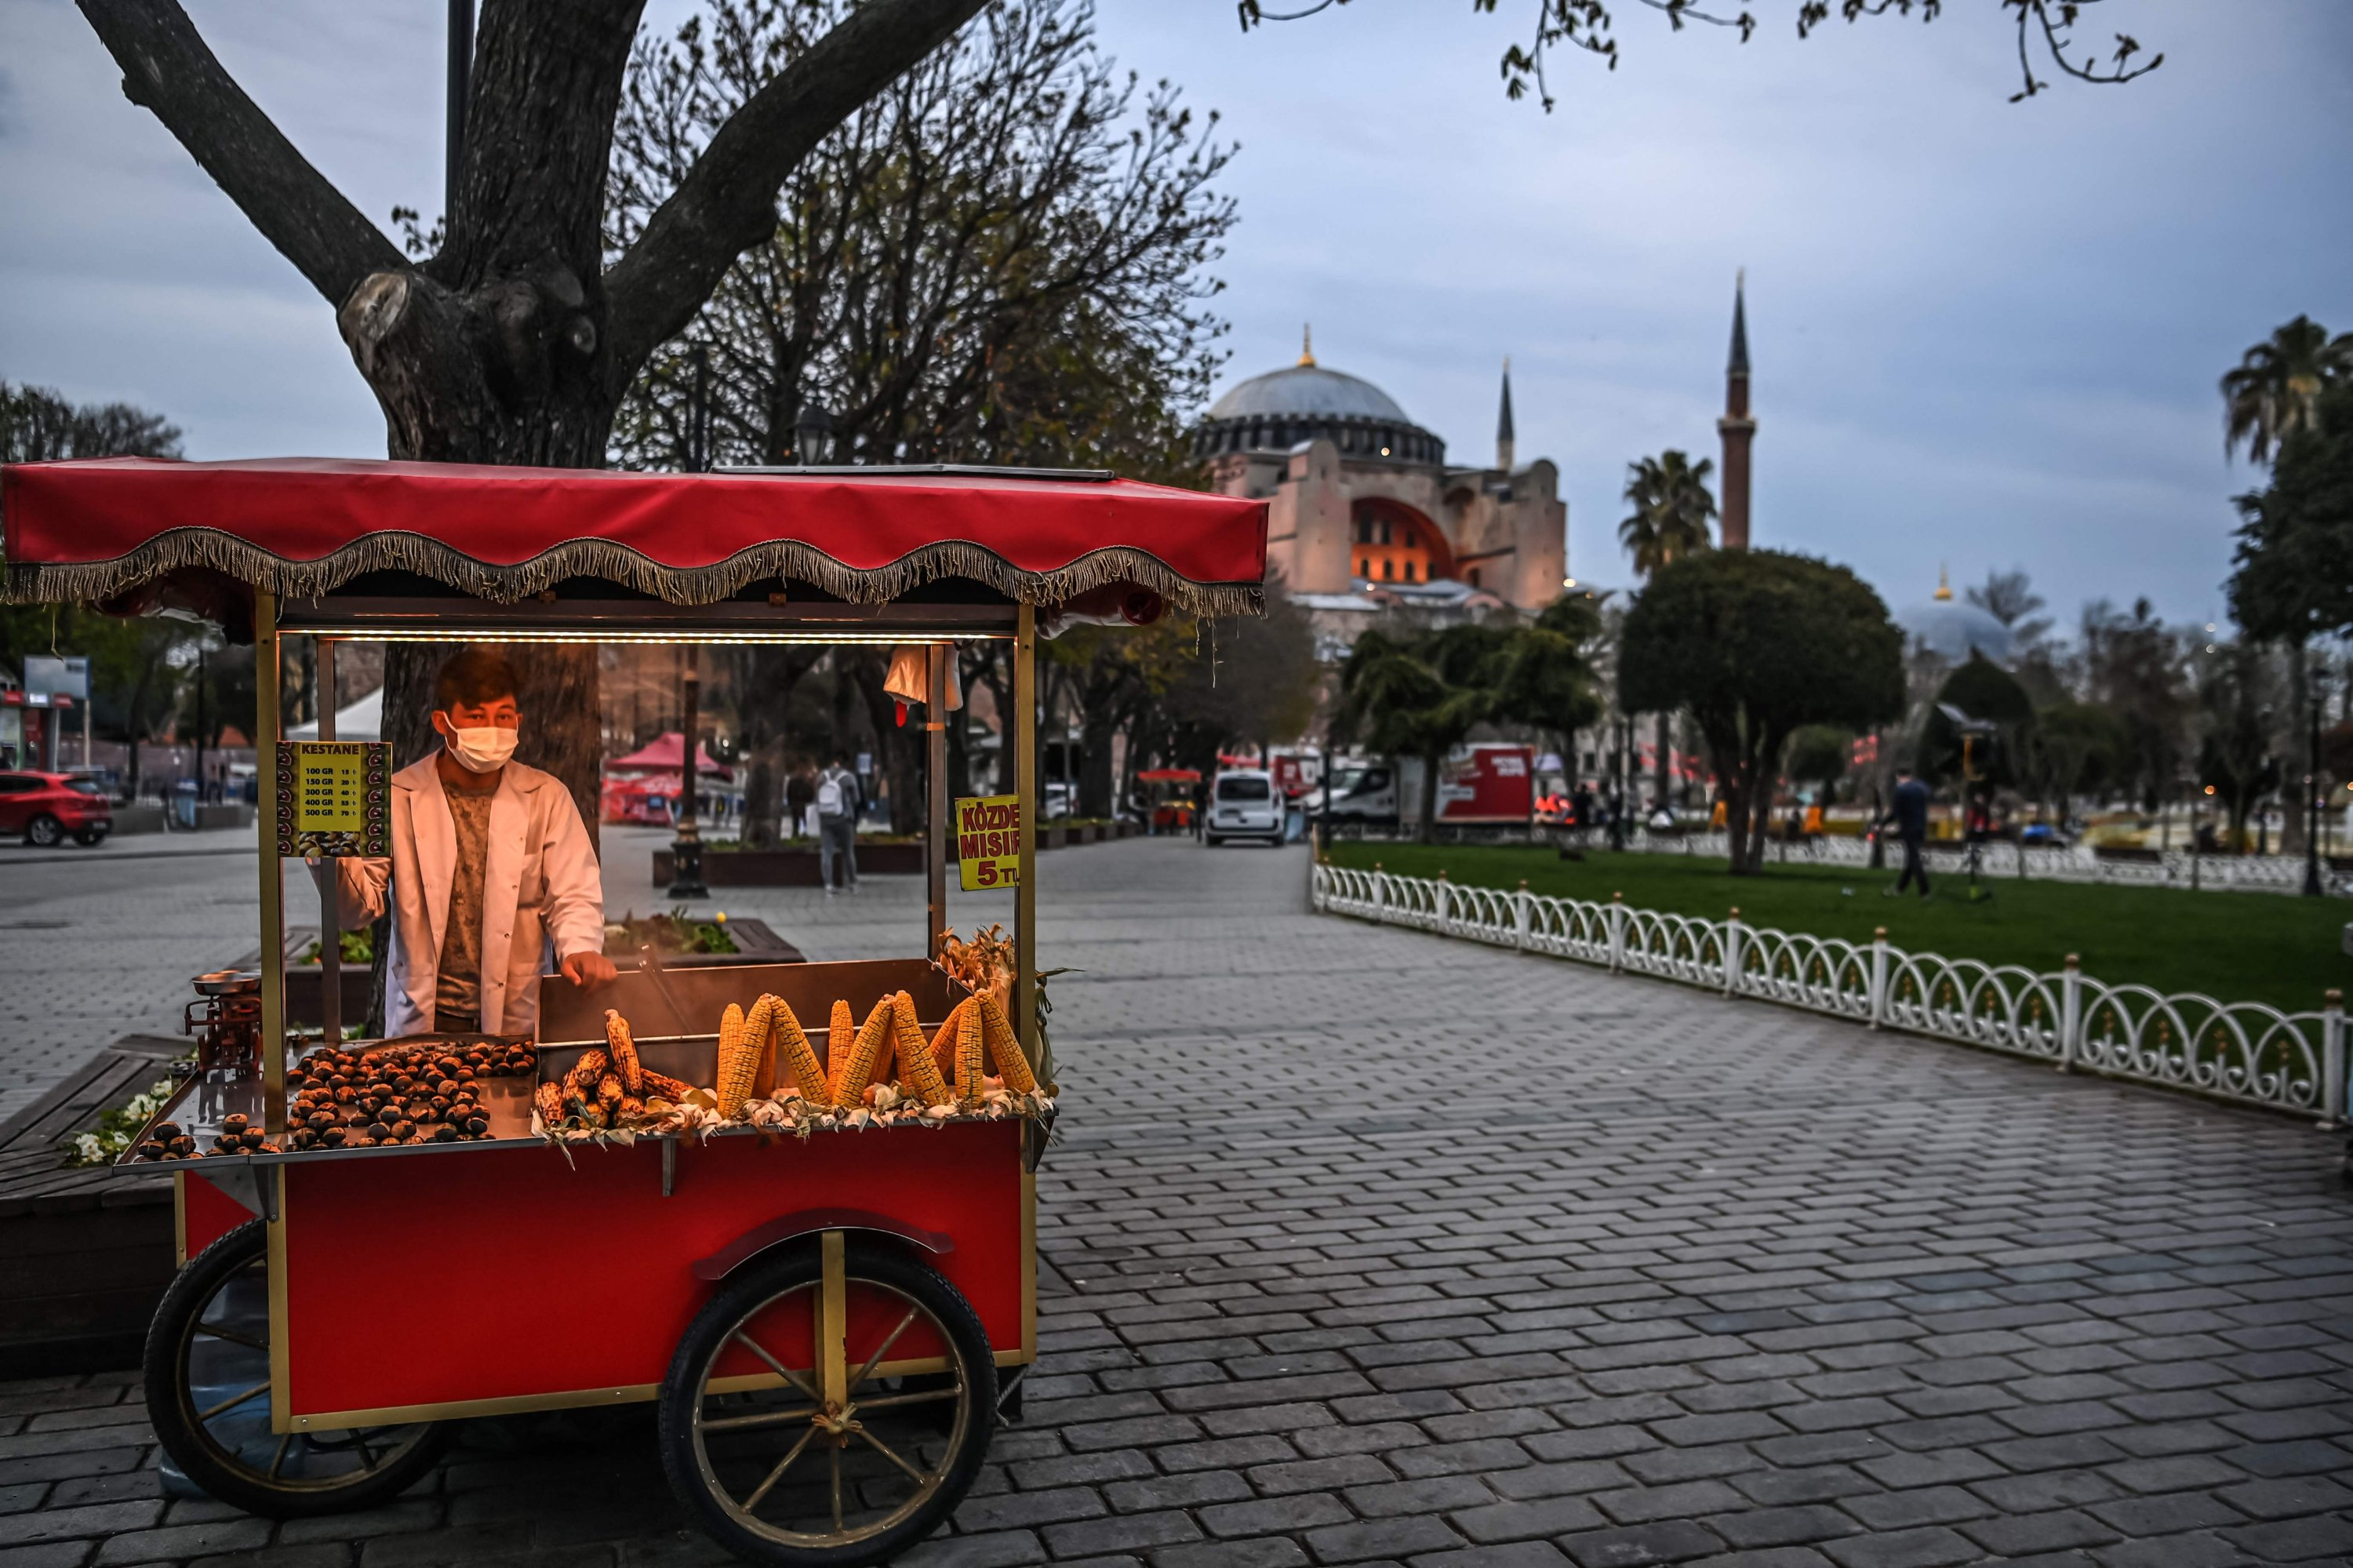 A street vendor sells rice at the Sultanahmet Square, with the Hagia Sophia Grand Mosque in the background, on the first day of the Islamic holy month of Ramadan in Istanbul, Turkey, April 13, 2021. (AFP Photo)